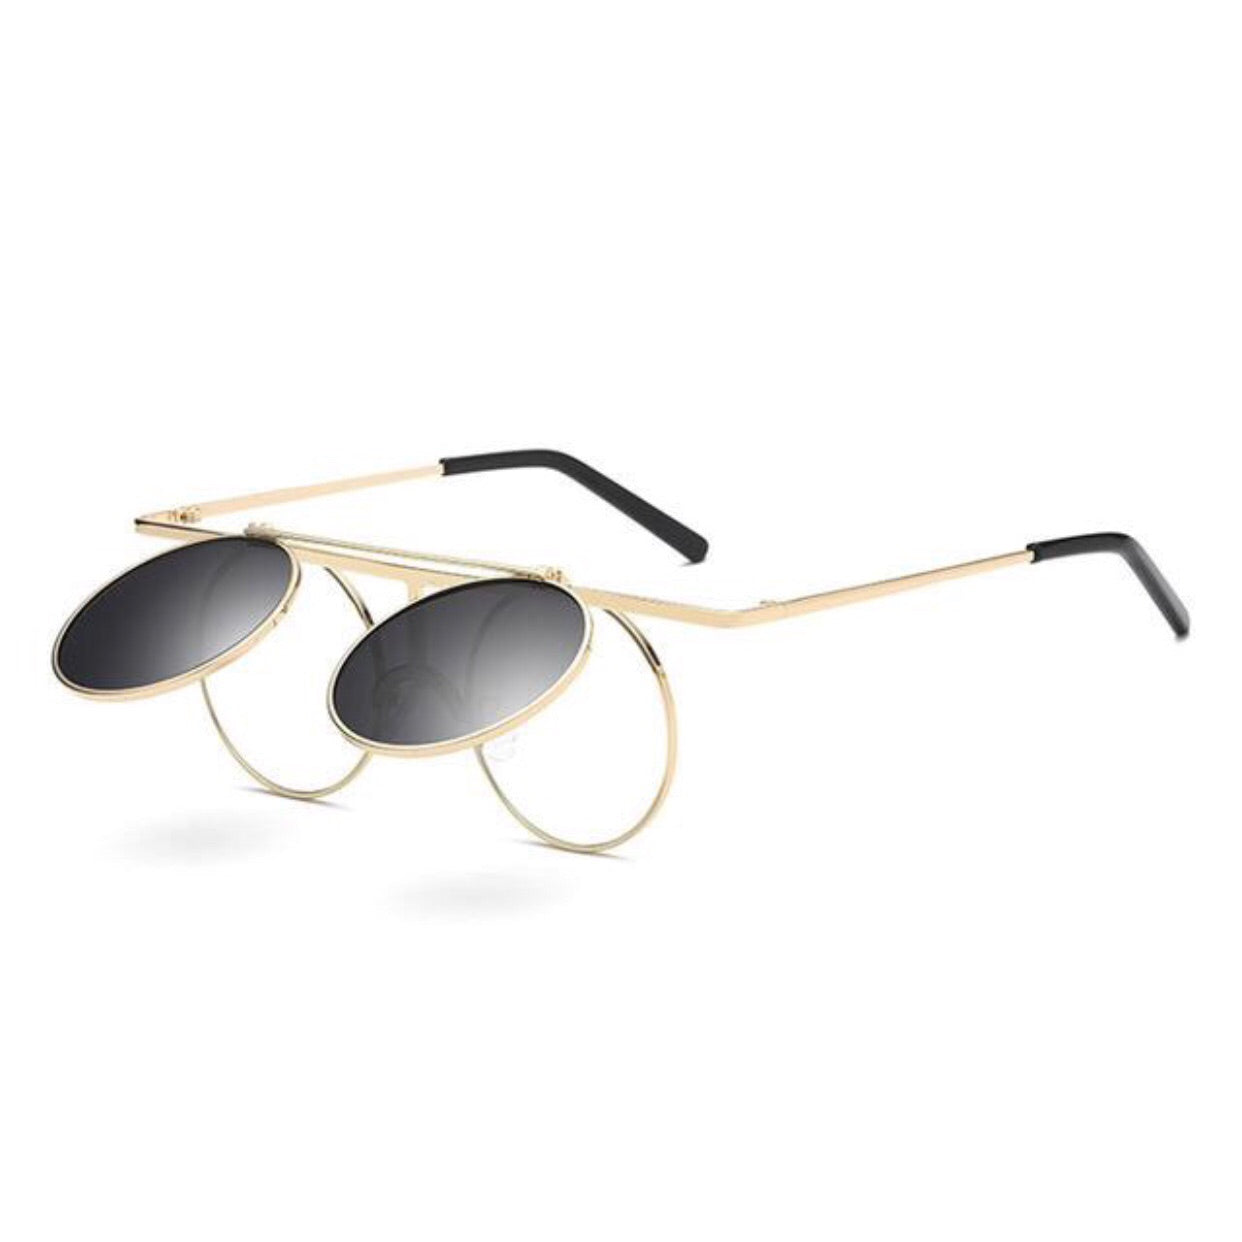 Round Designer Flip-Up Sunglasses